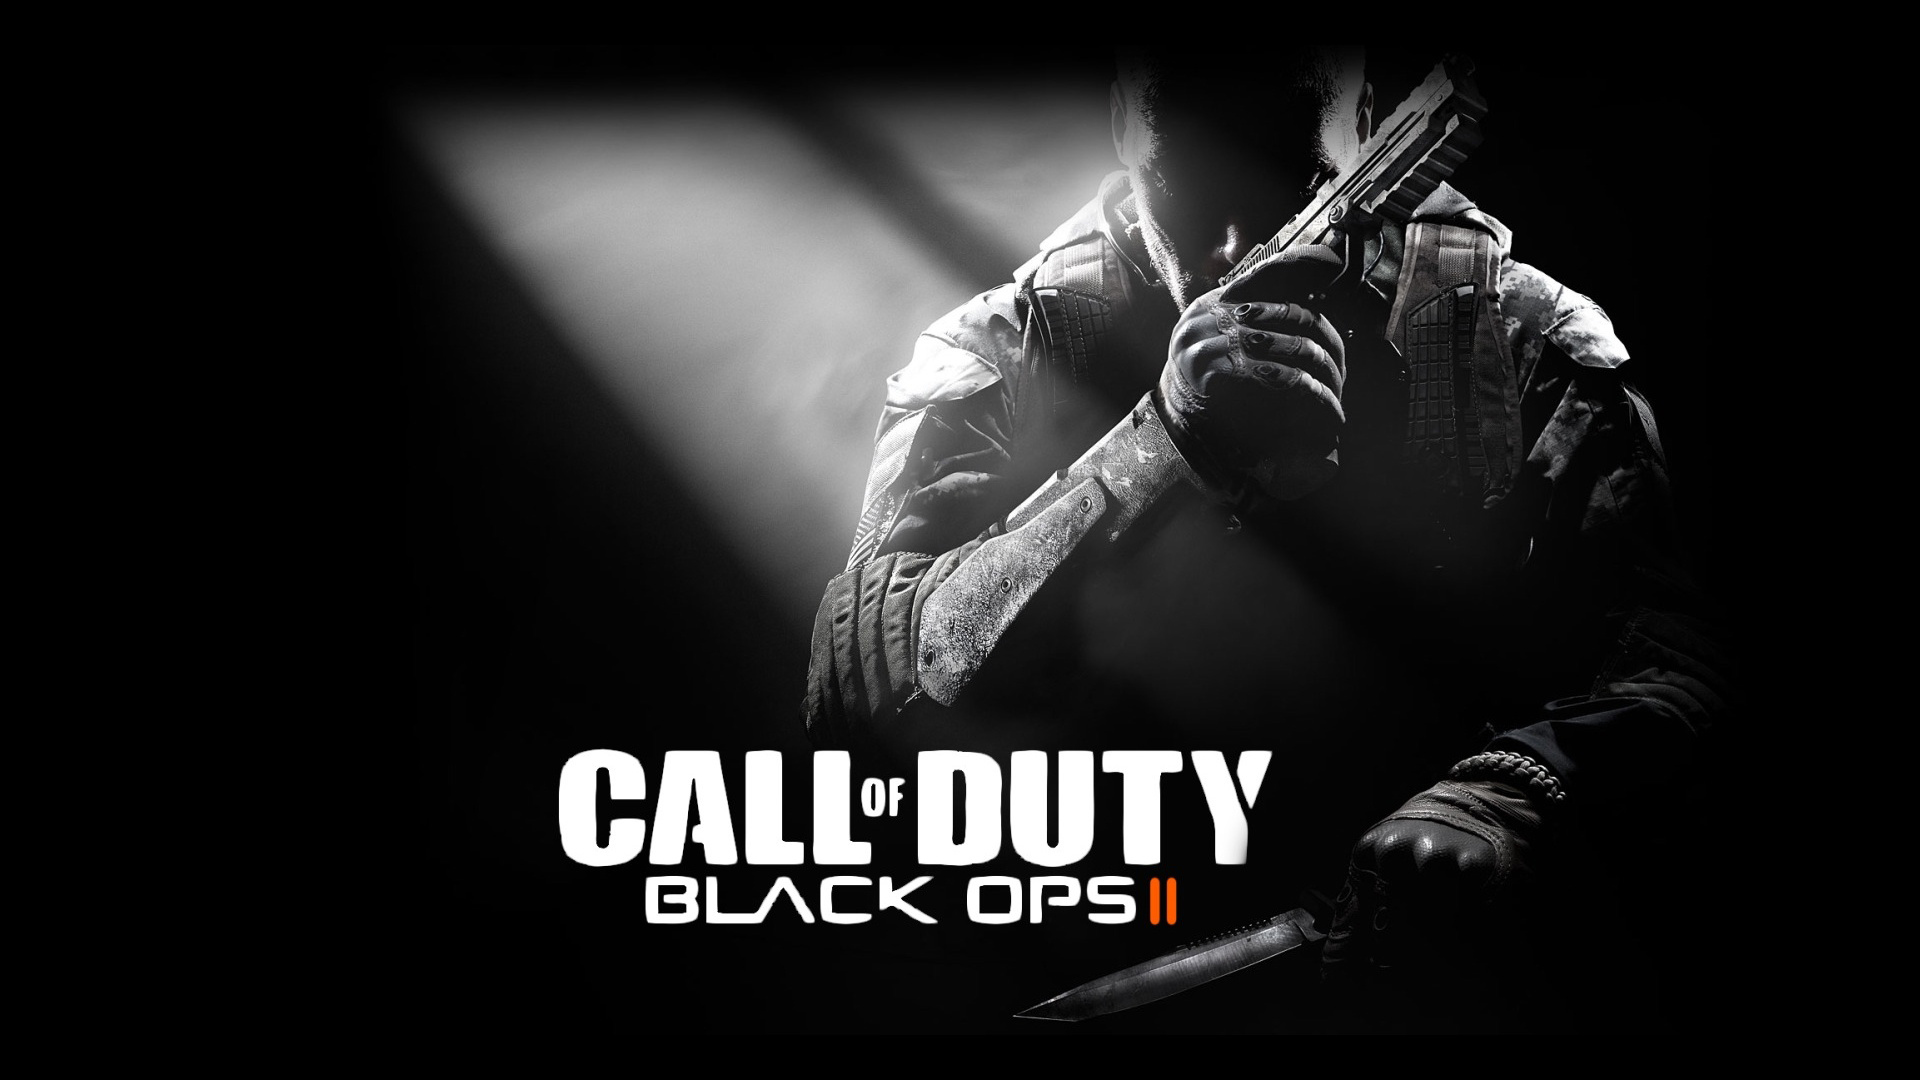 Call of Duty Black Ops 2 Torrent Download - CroTorrents M1216 Black Ops 2